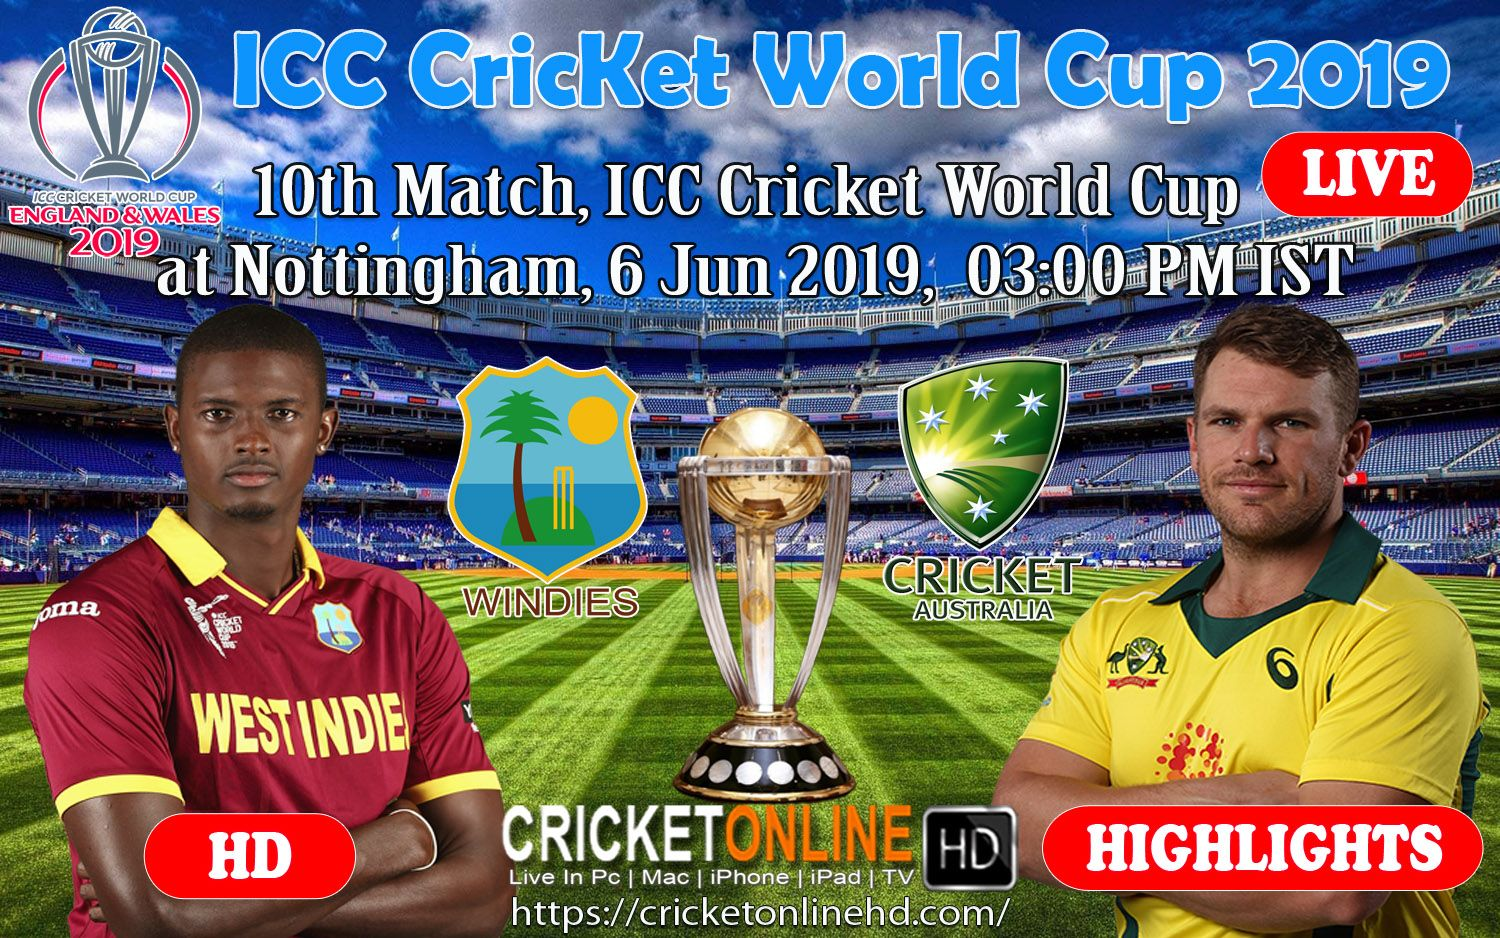 Pin On Icc Cricket World Cup 2019-4630